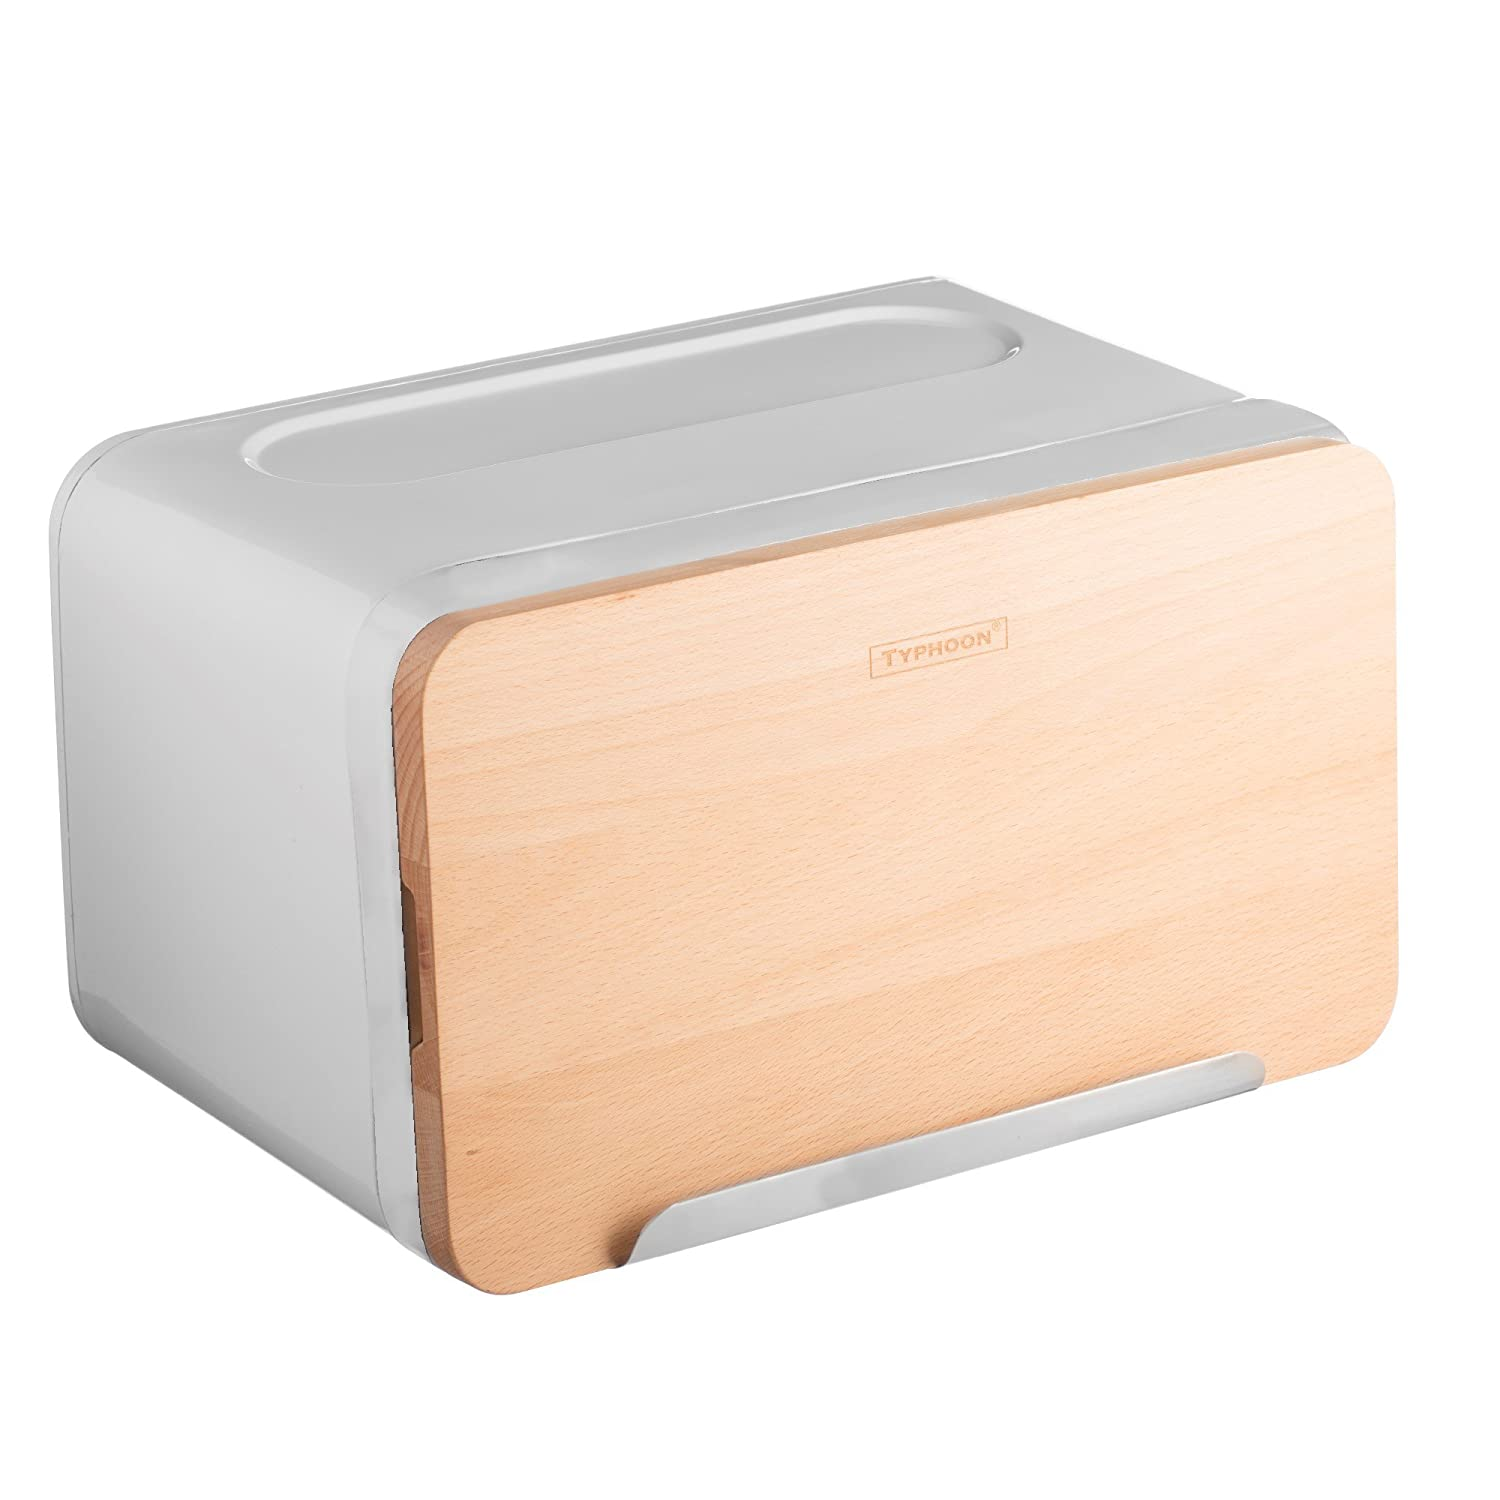 Hudson White Bread Box With Wood Chopping Board Lid TYPHOON 1400.104